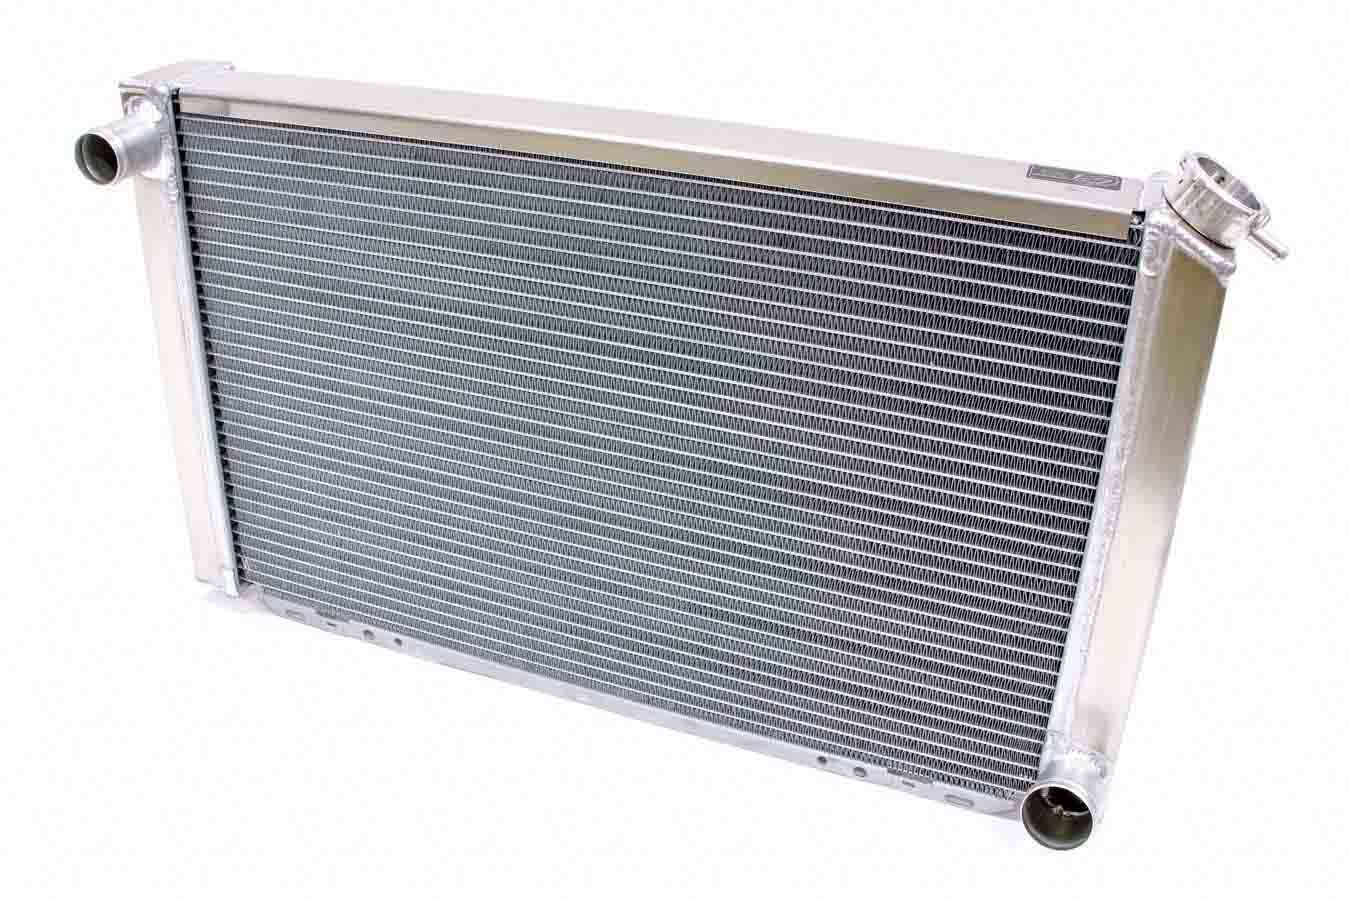 BE-COOL Radiators 35005 Radiator, Universal-Fit, 28 in W x 17 in H x 3 in D, Driver Side Inlet, Passenger Side Outlet, Aluminum, Natural, Each